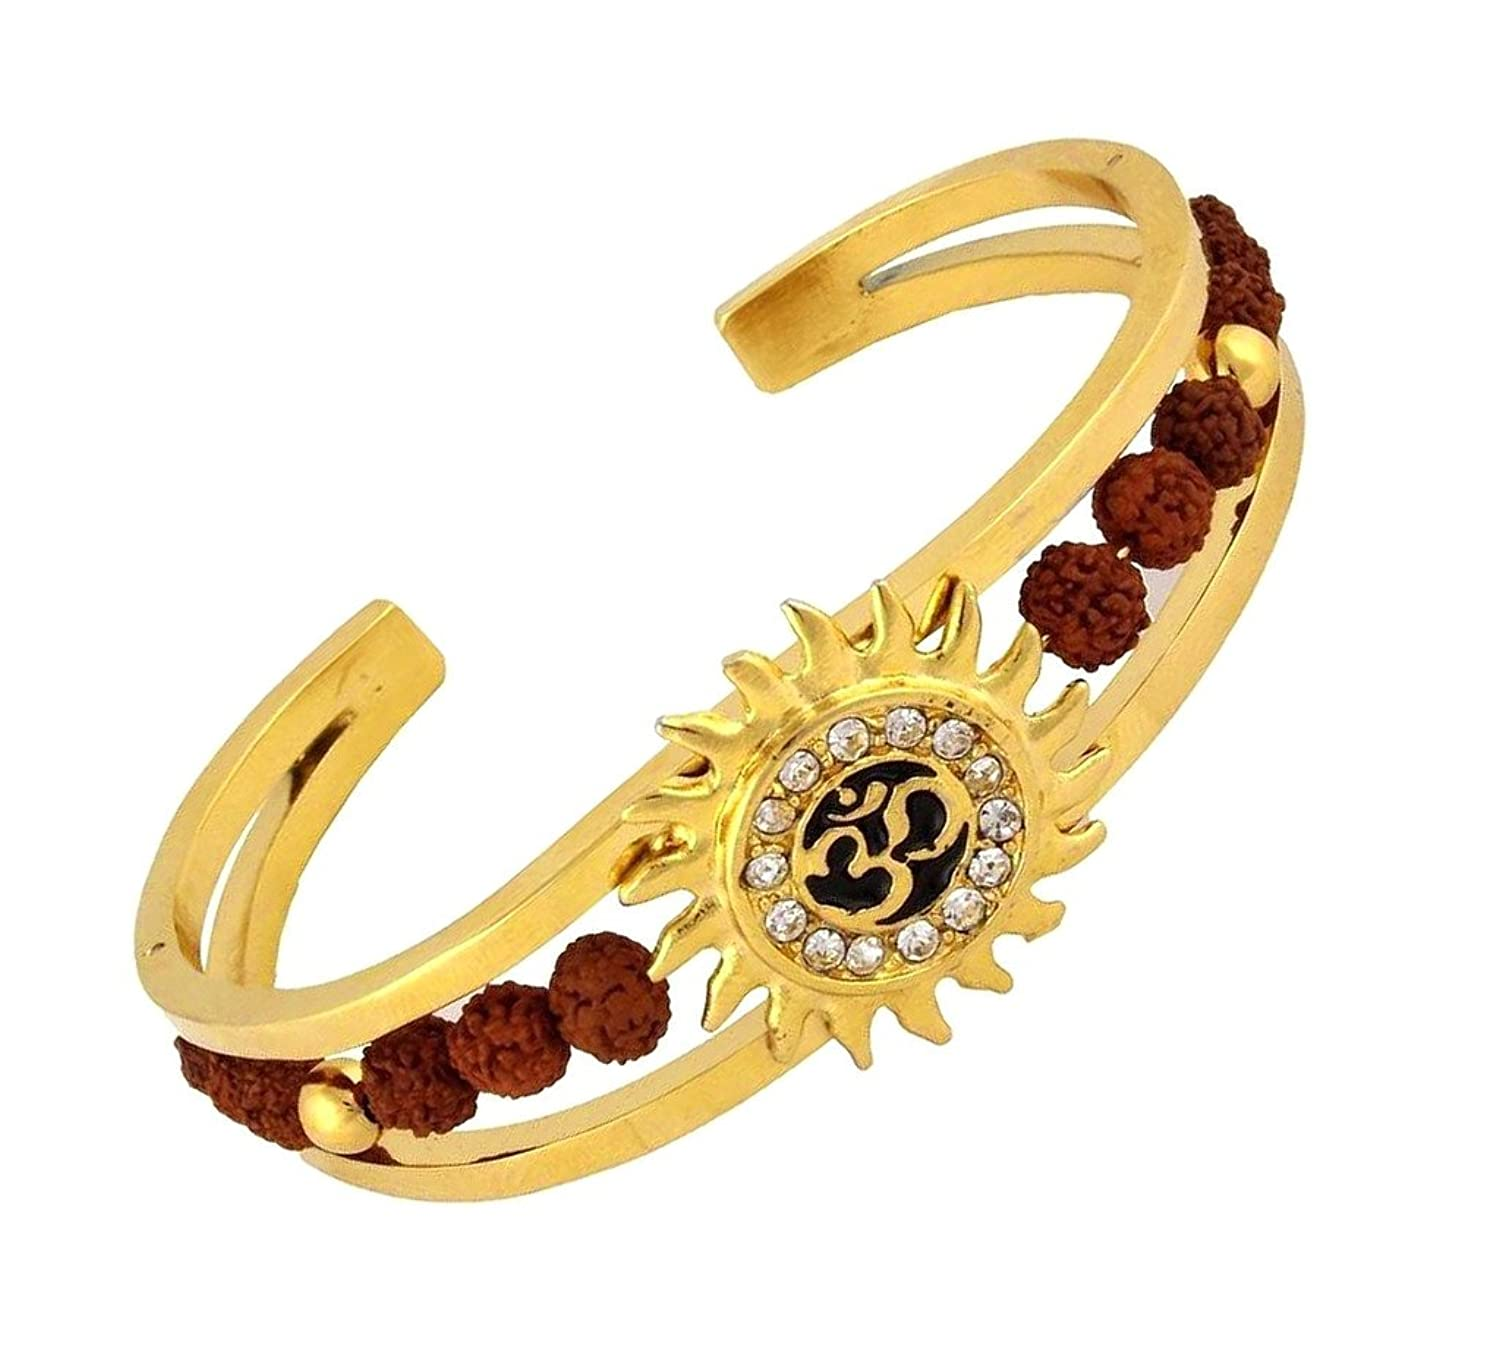 bracelet nyr christies gold diamond cartier s penelope christie jewels online and